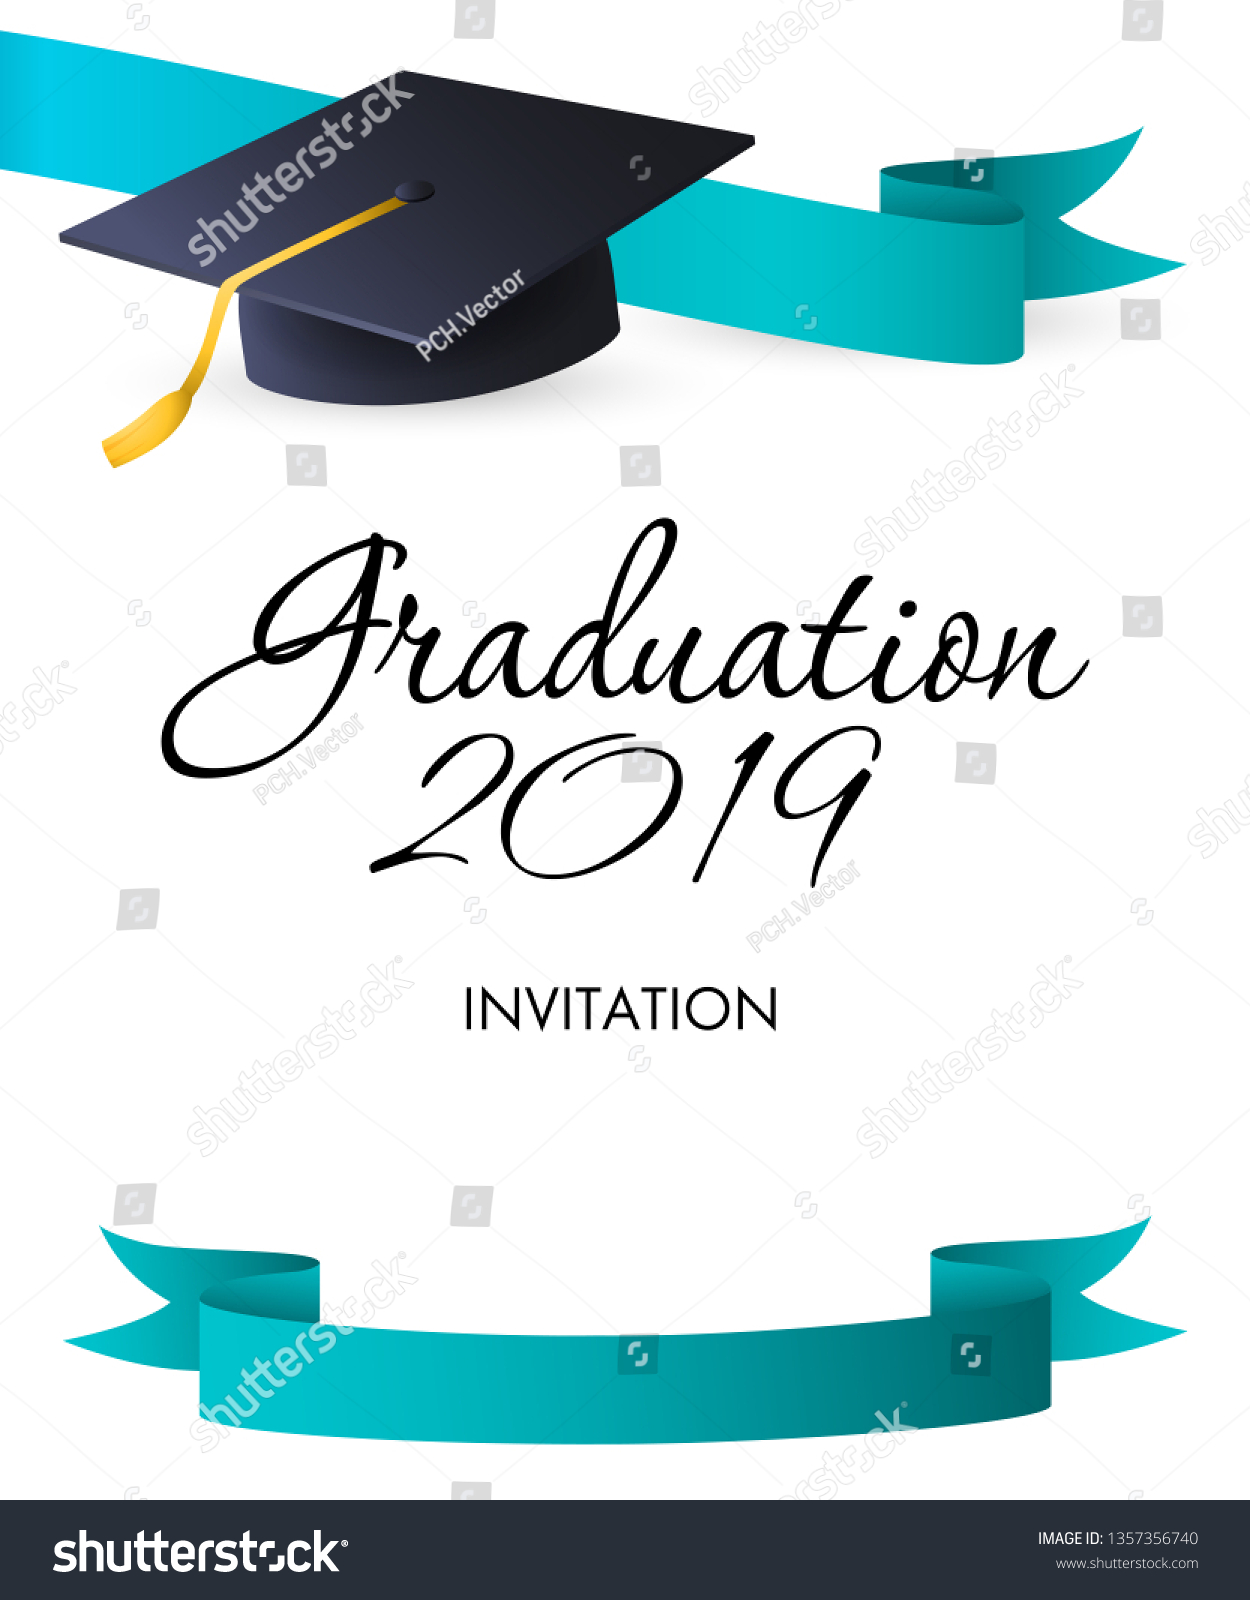 Graduation 2019 Invitation Design Blue Ribbons Stock Vector (Royalty